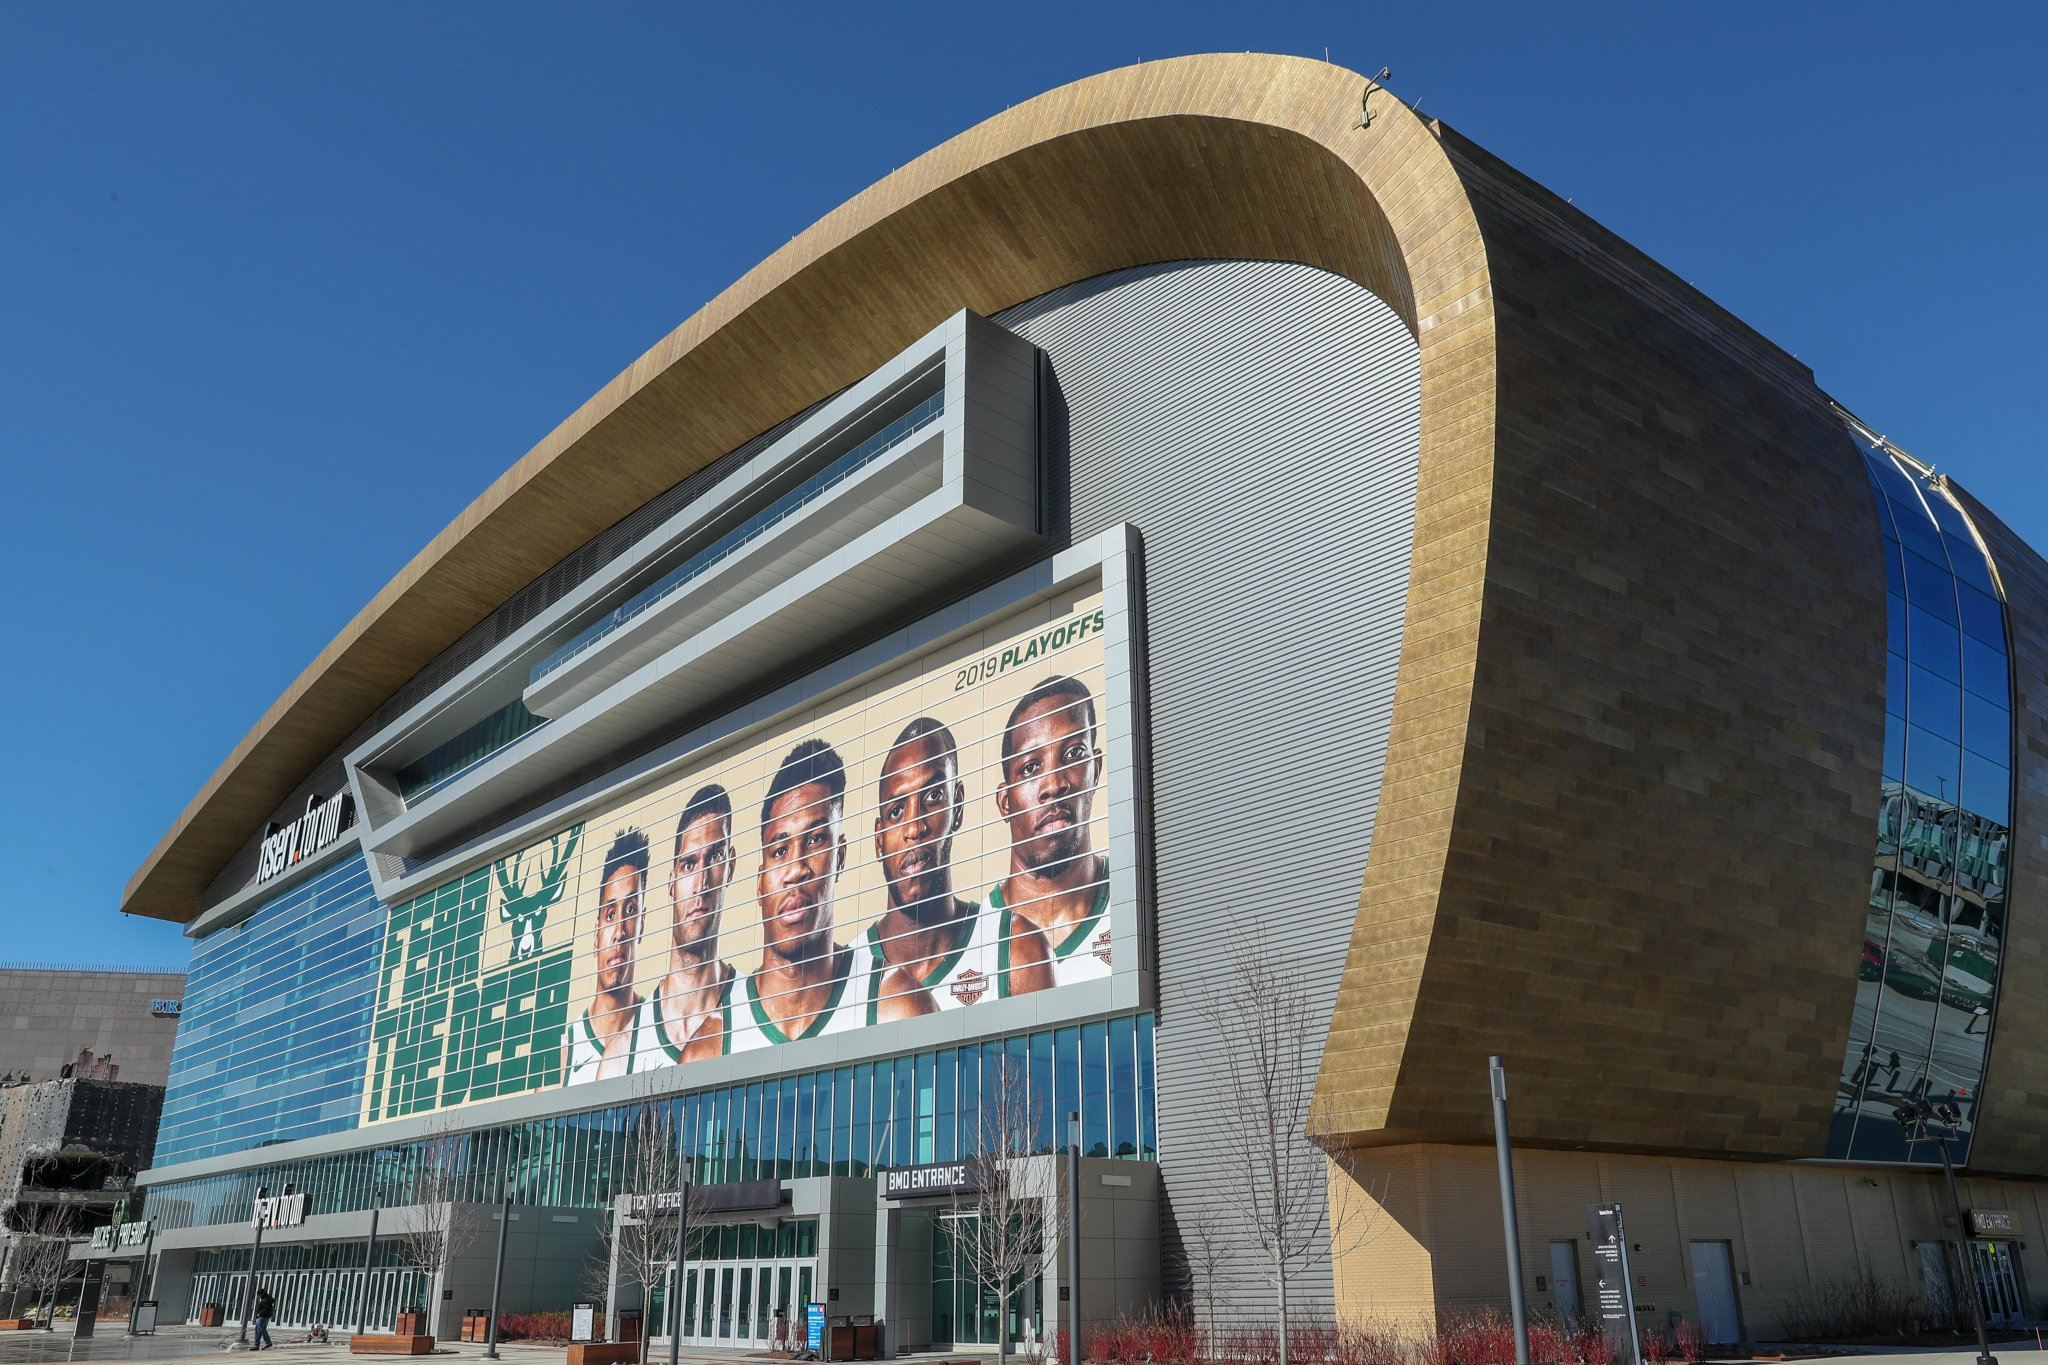 Milwaukee Bucks to Offer Fan Giveaways and Activities on the Plaza in Front of Fiserv Forum for First Round of 2019 Playoffs